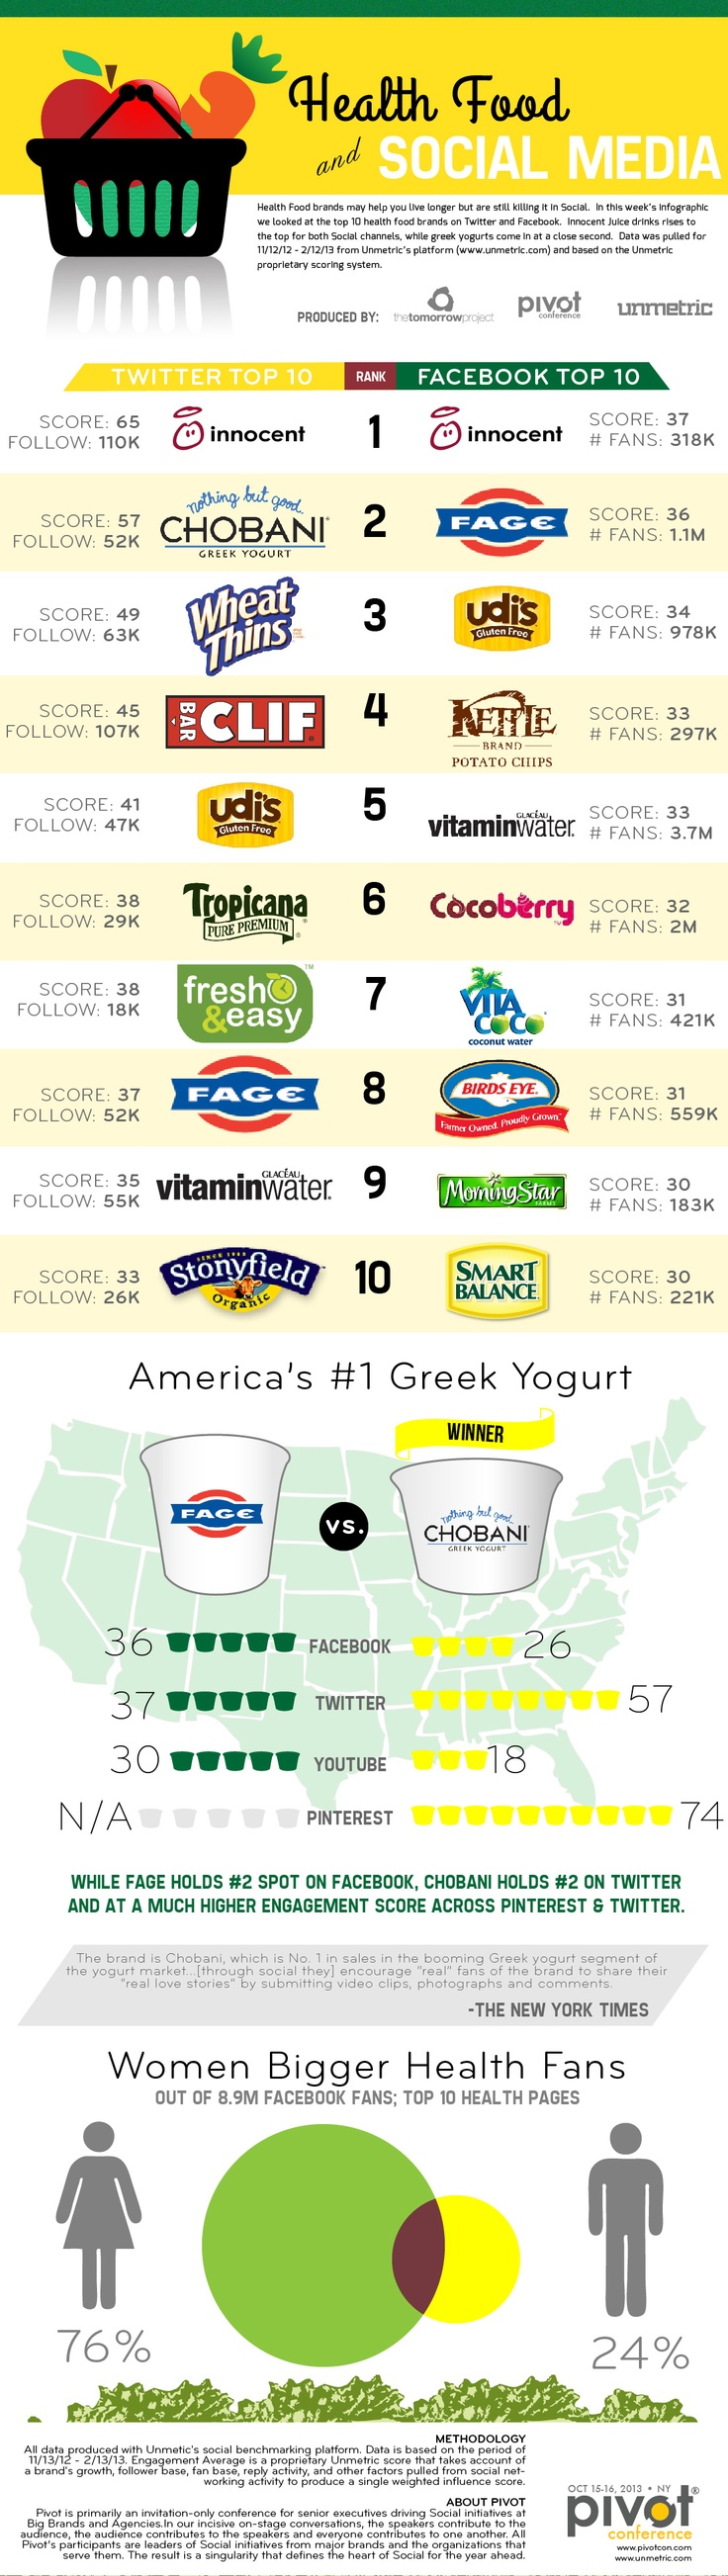 Popular Healthy Food Brands 10 Most Popular Healthy Food Brands on Facebook and Twitter